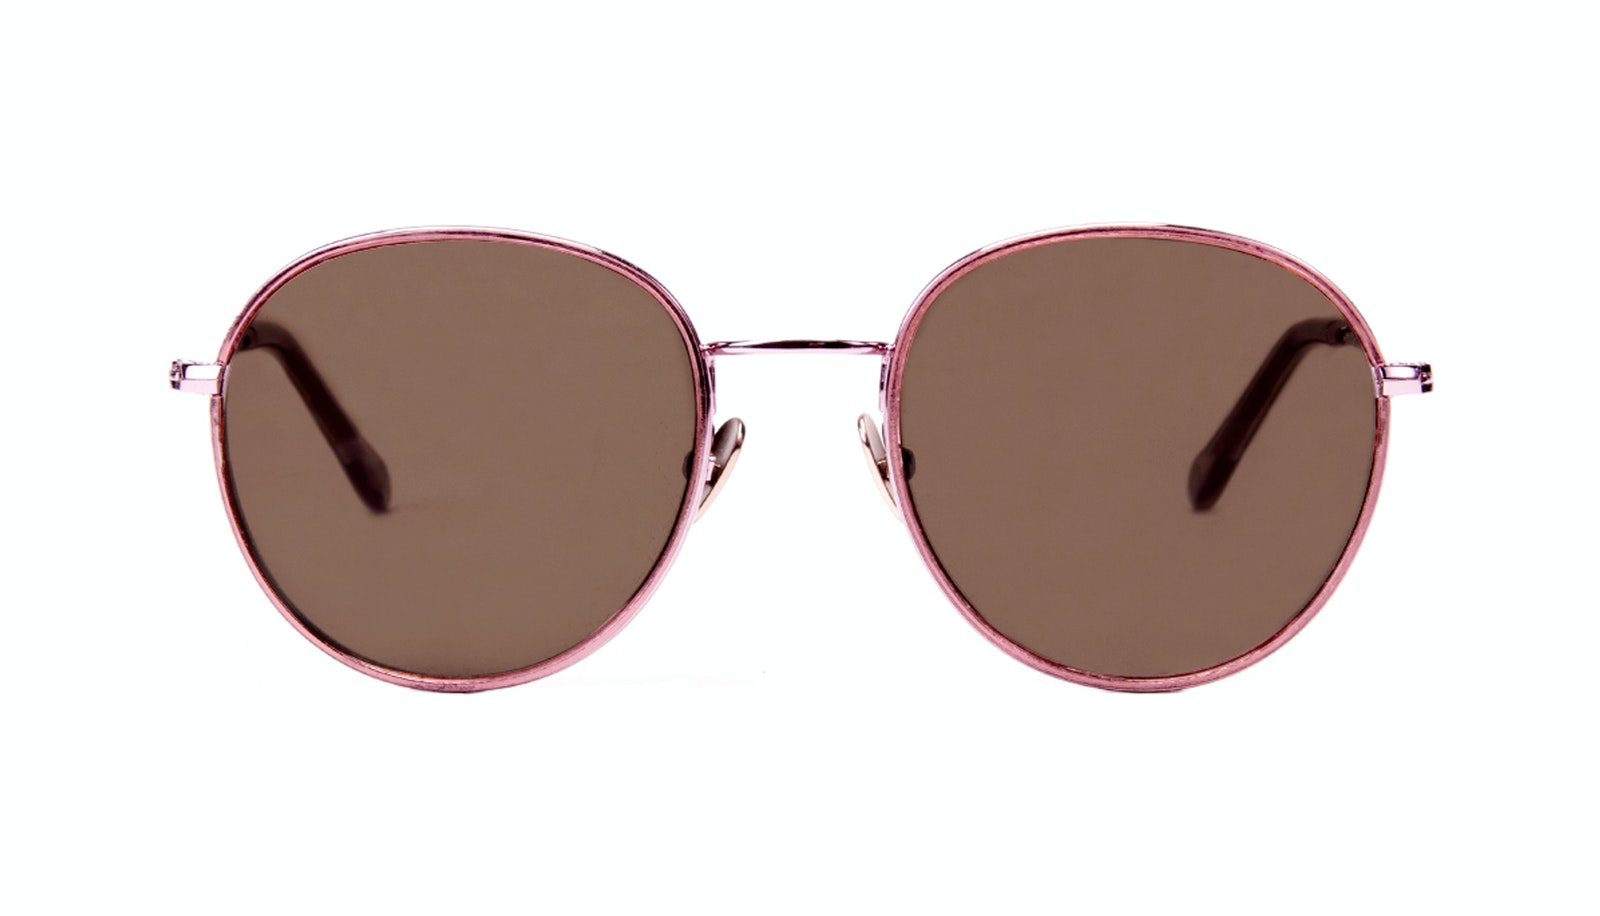 Affordable Fashion Glasses Aviator Round Sunglasses Women Subrosa Romance